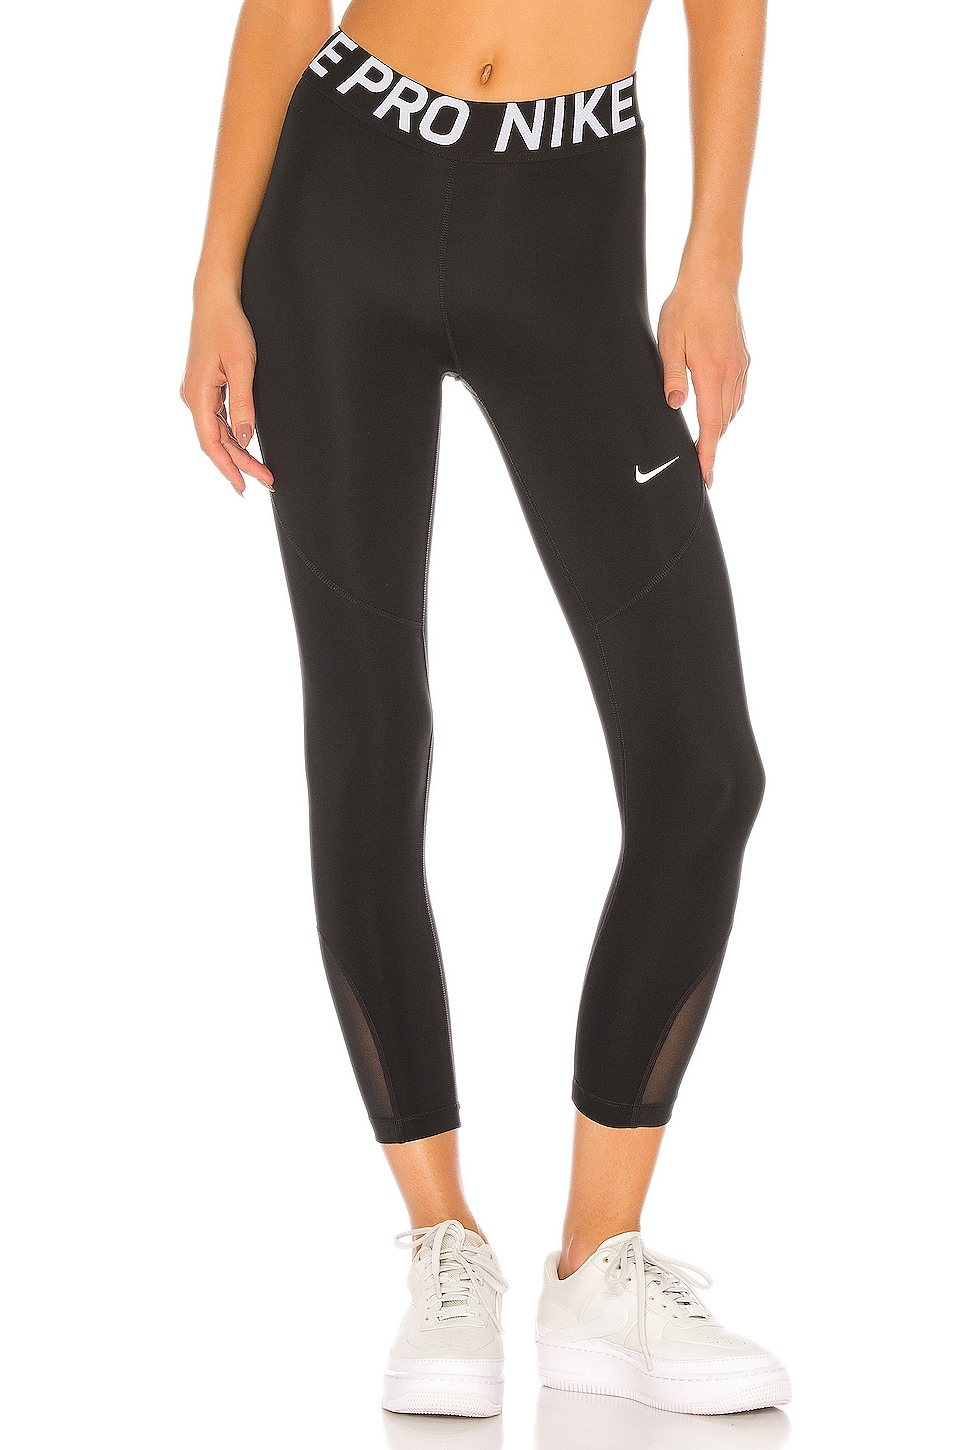 Nike NP Crop Legging in Black & White